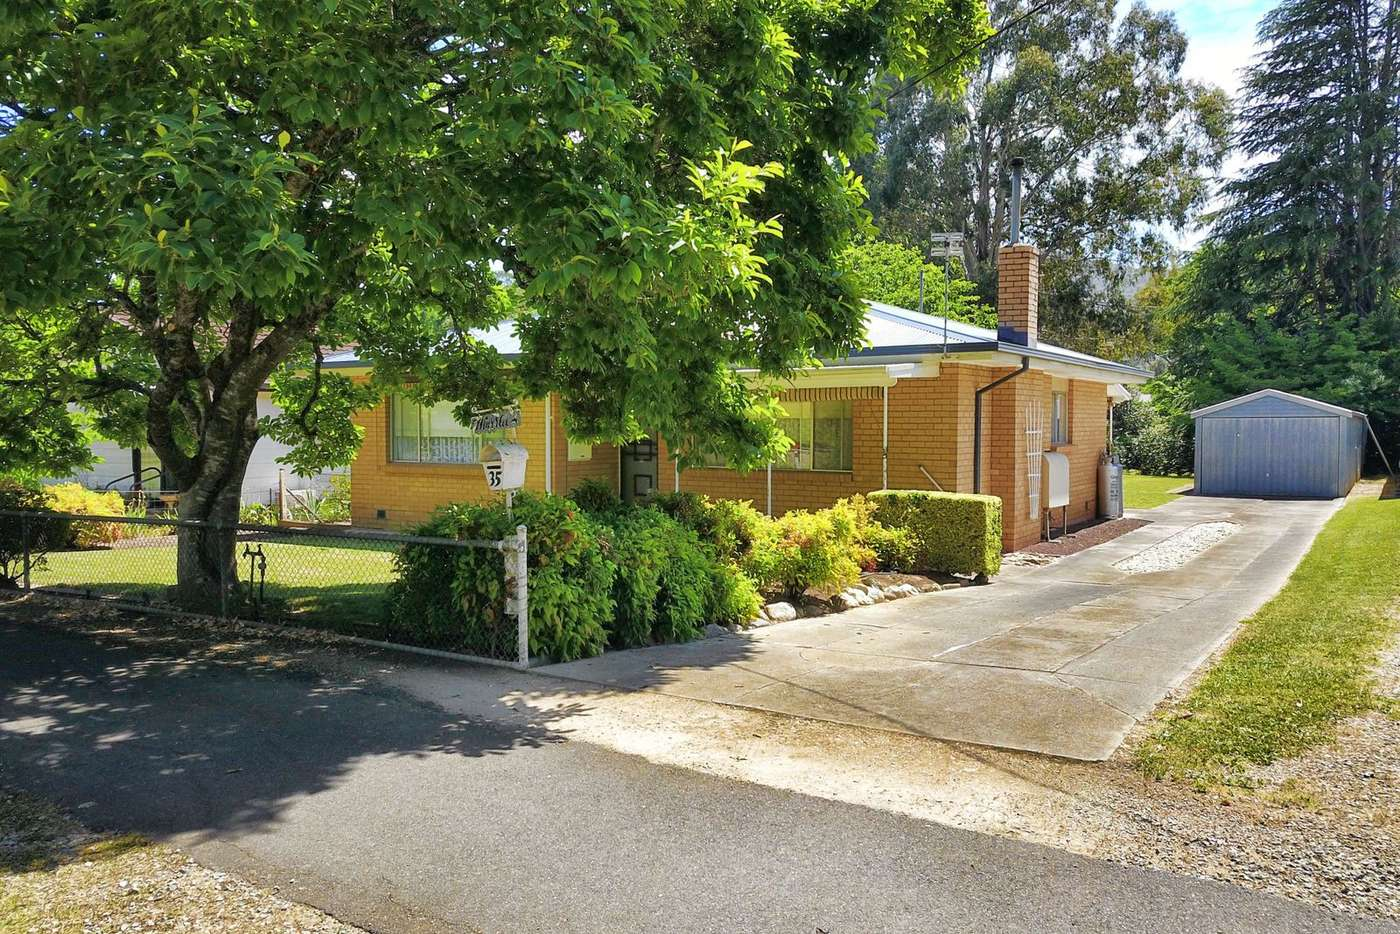 Main view of Homely house listing, 35 Cobden Street, Bright VIC 3741